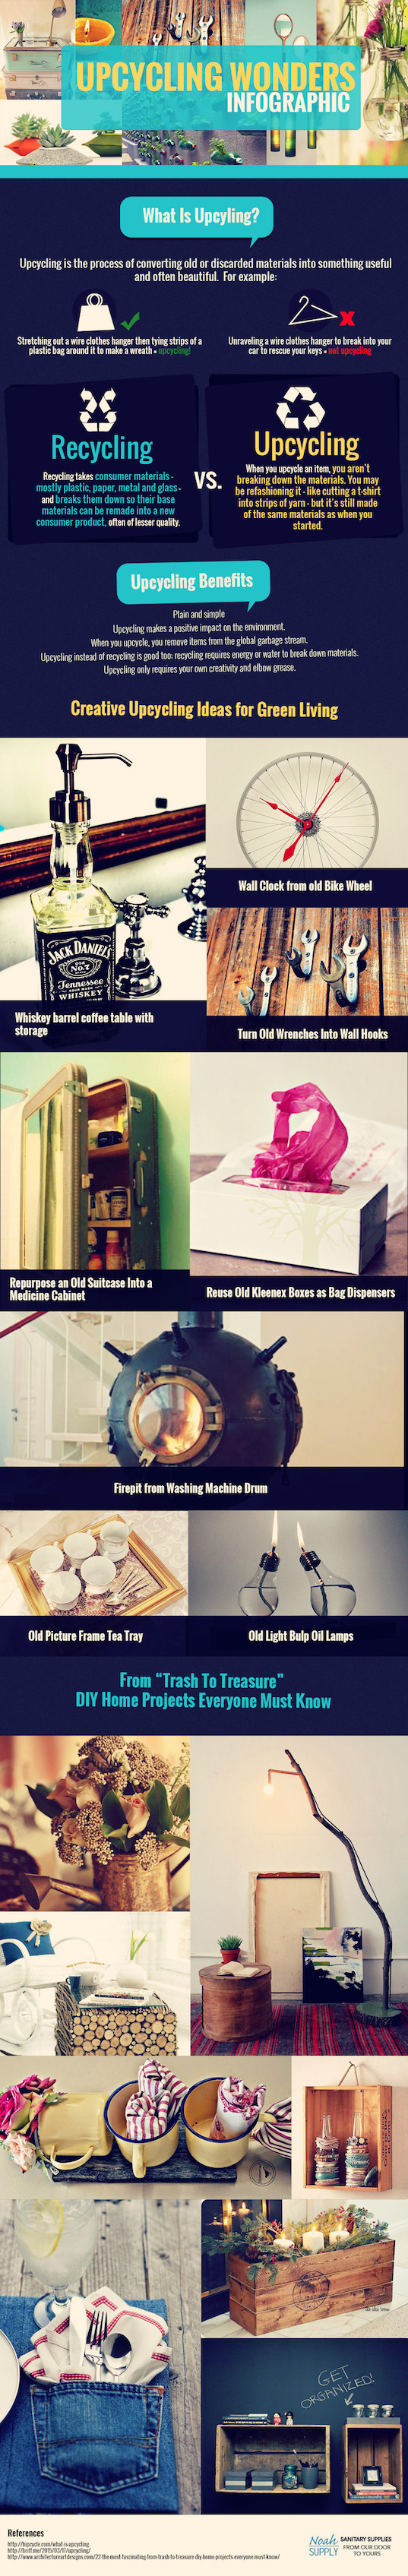 upcycling, infographic, Noah Supply, DIY projects, upcycling projects, reader submitted content